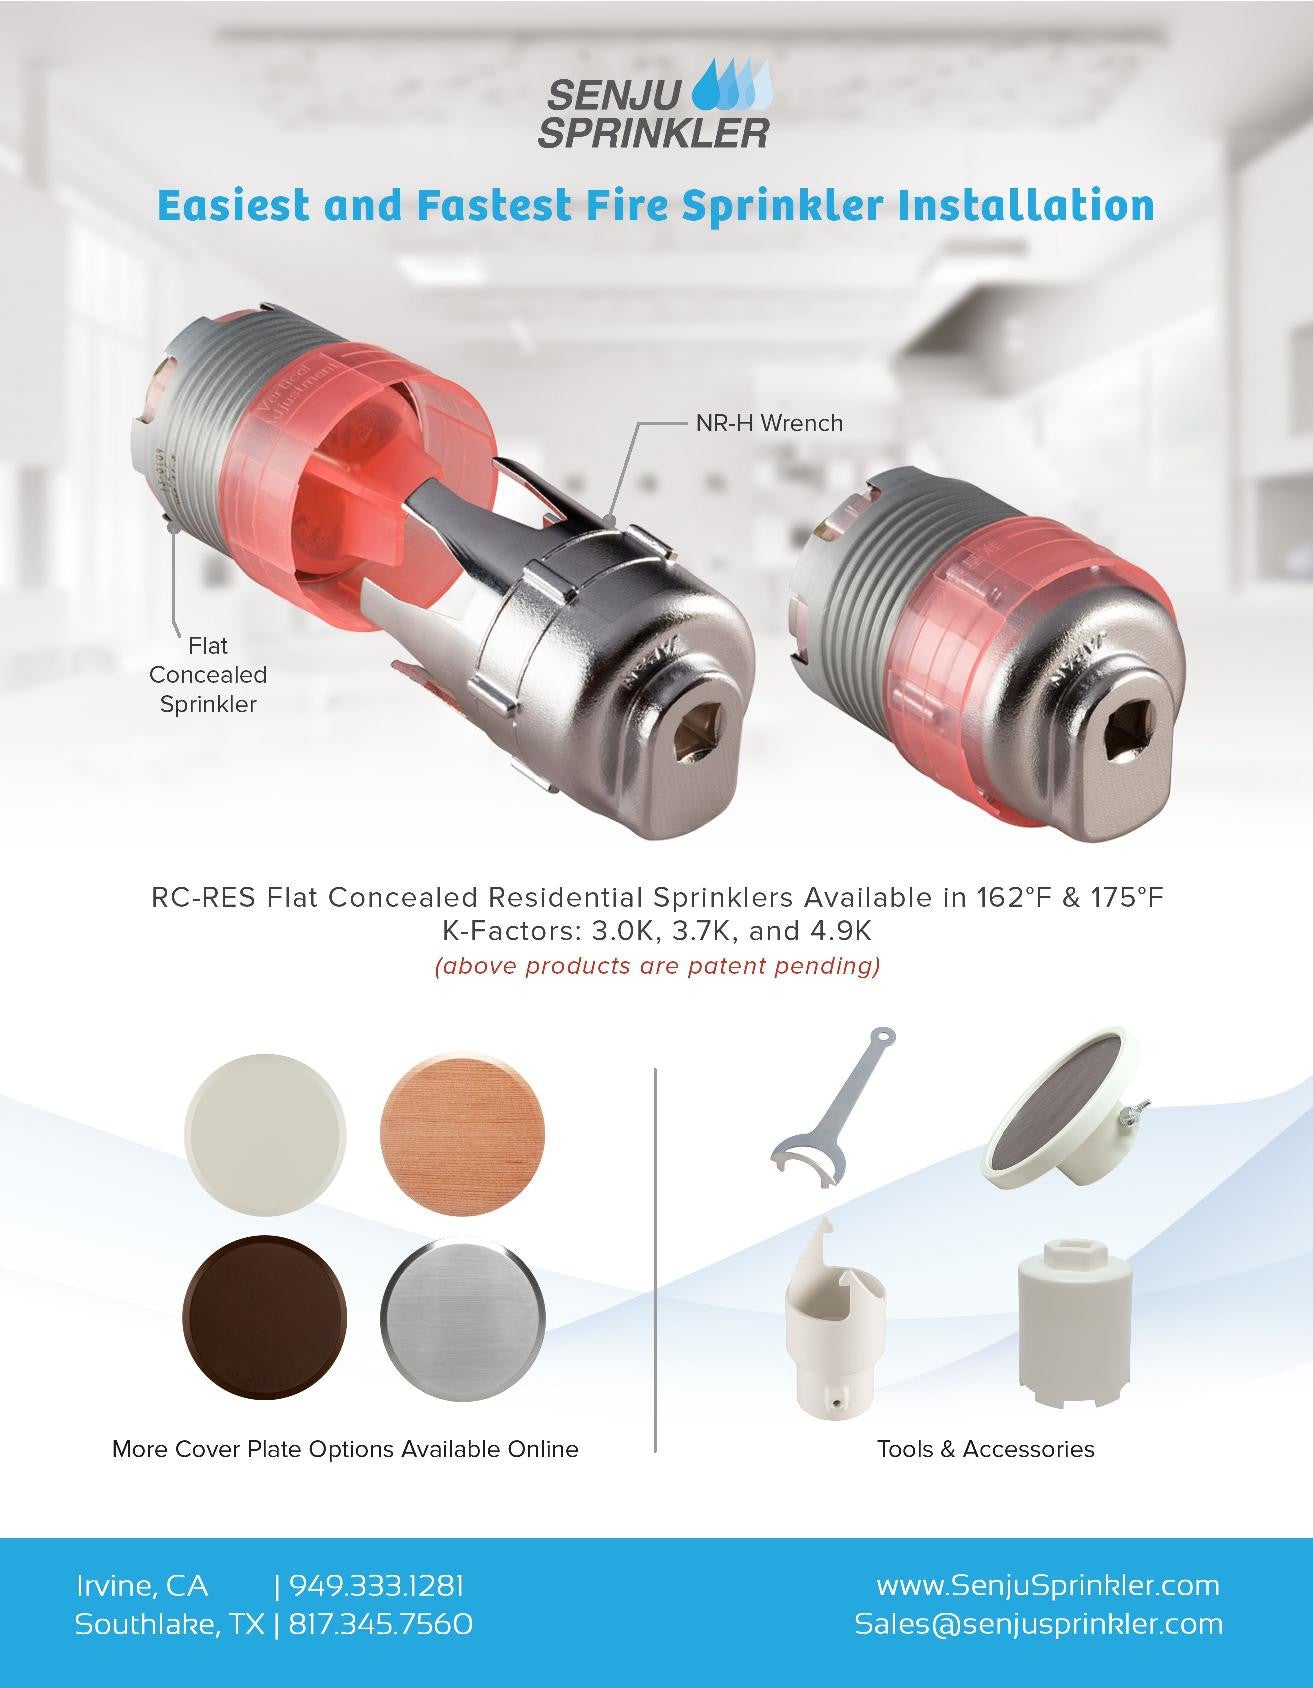 Fire Sprinkler Installation Made Easy